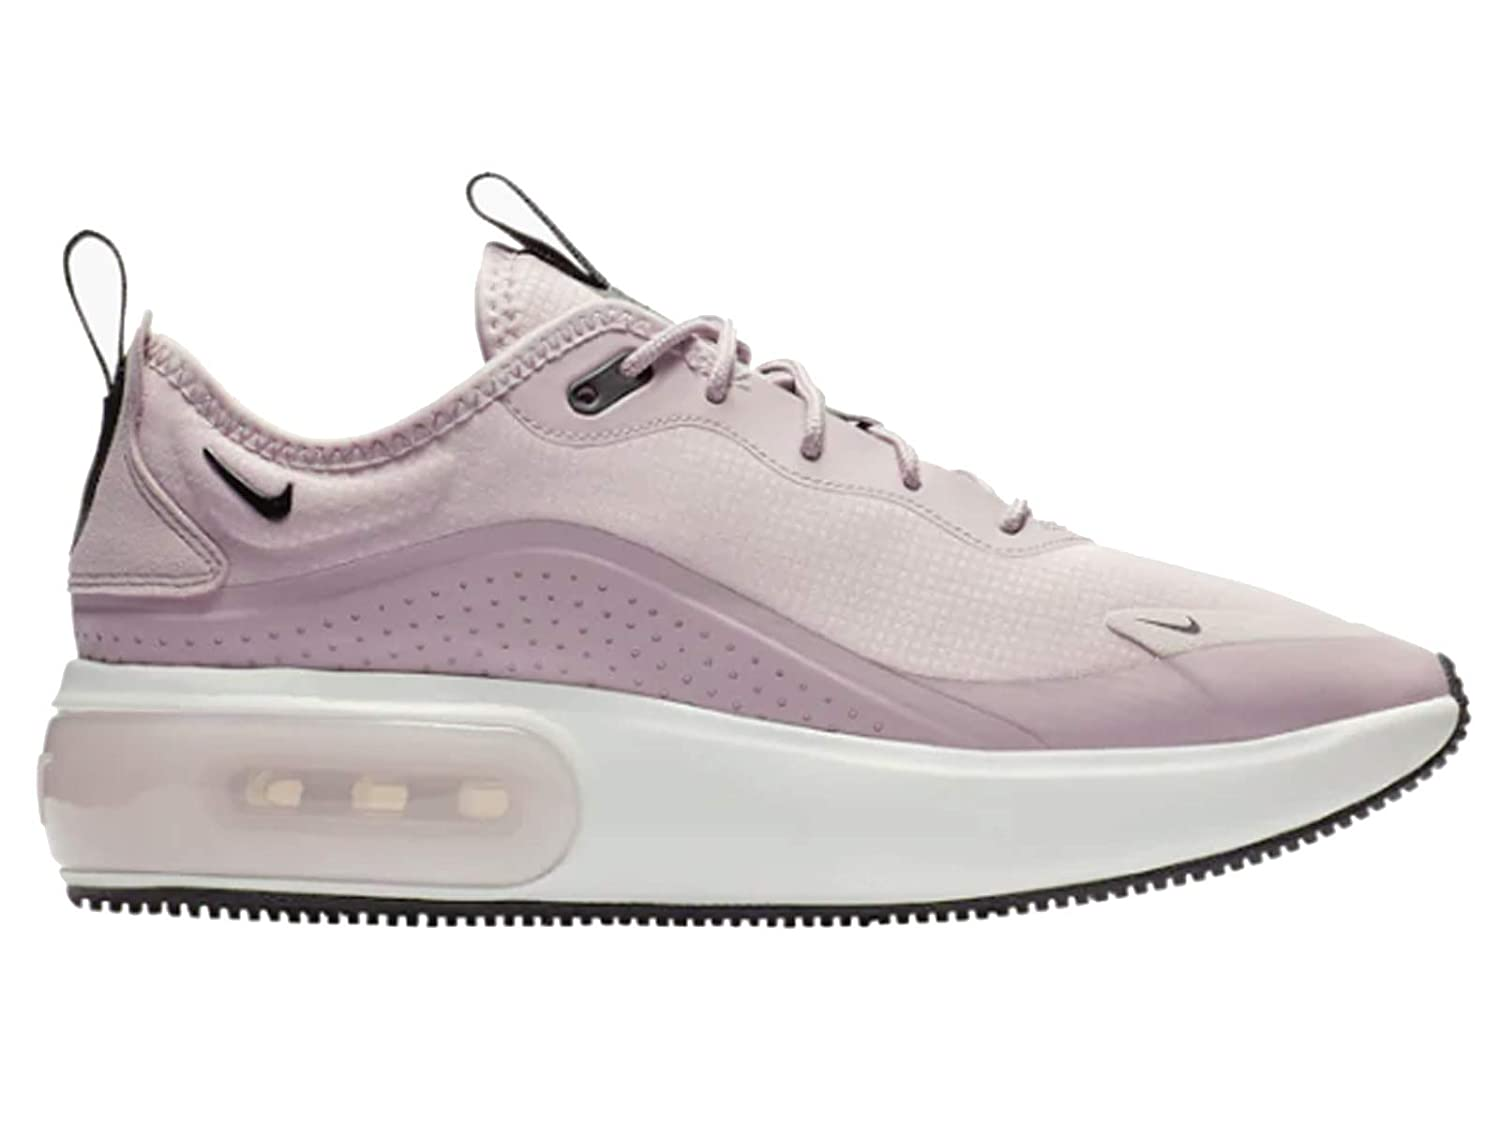 22a13351de Amazon.com | Nike Women's Air Max Dia Mesh Cross-Trainers Shoes | Shoes